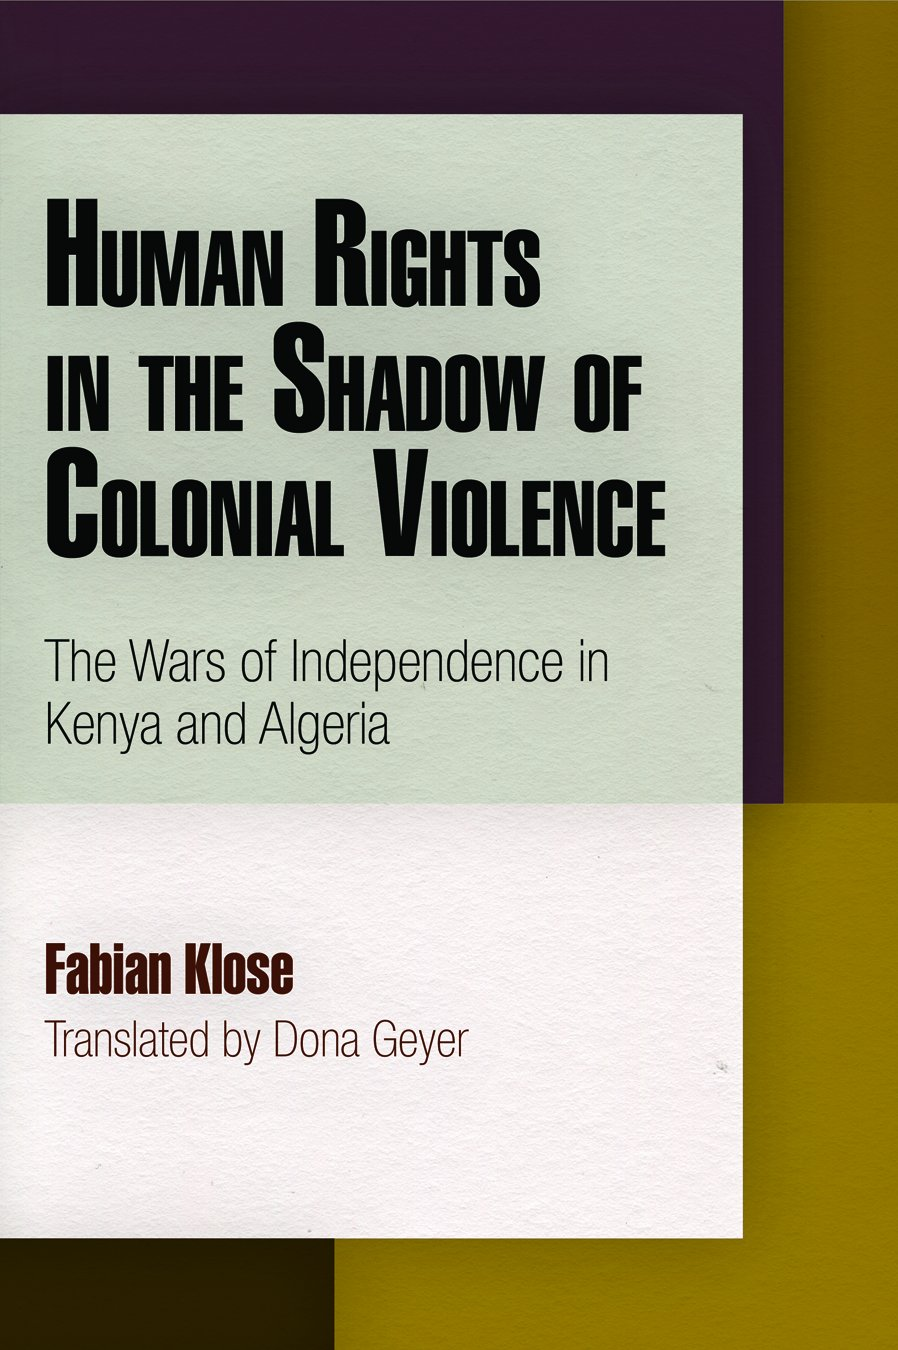 Human Rights in the Shadow of Colonial Violence: The Wars of Independence in Kenya and Algeria (Pennsylvania Studies in Human Rights) ebook